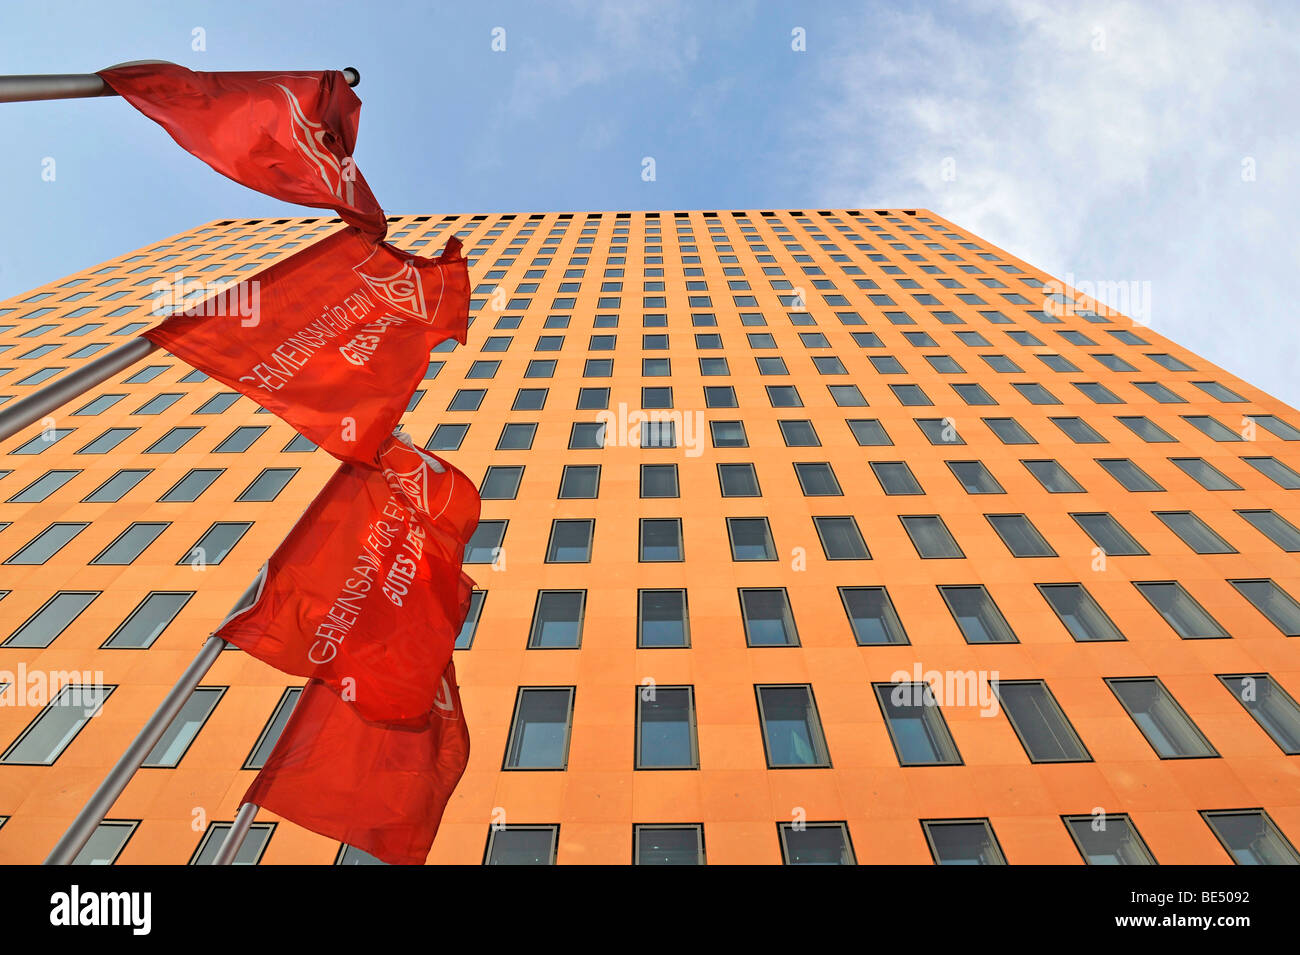 Building of the IG Metall trade union, flags, Frankfurt am Main, Hesse, Germany, Europe - Stock Image